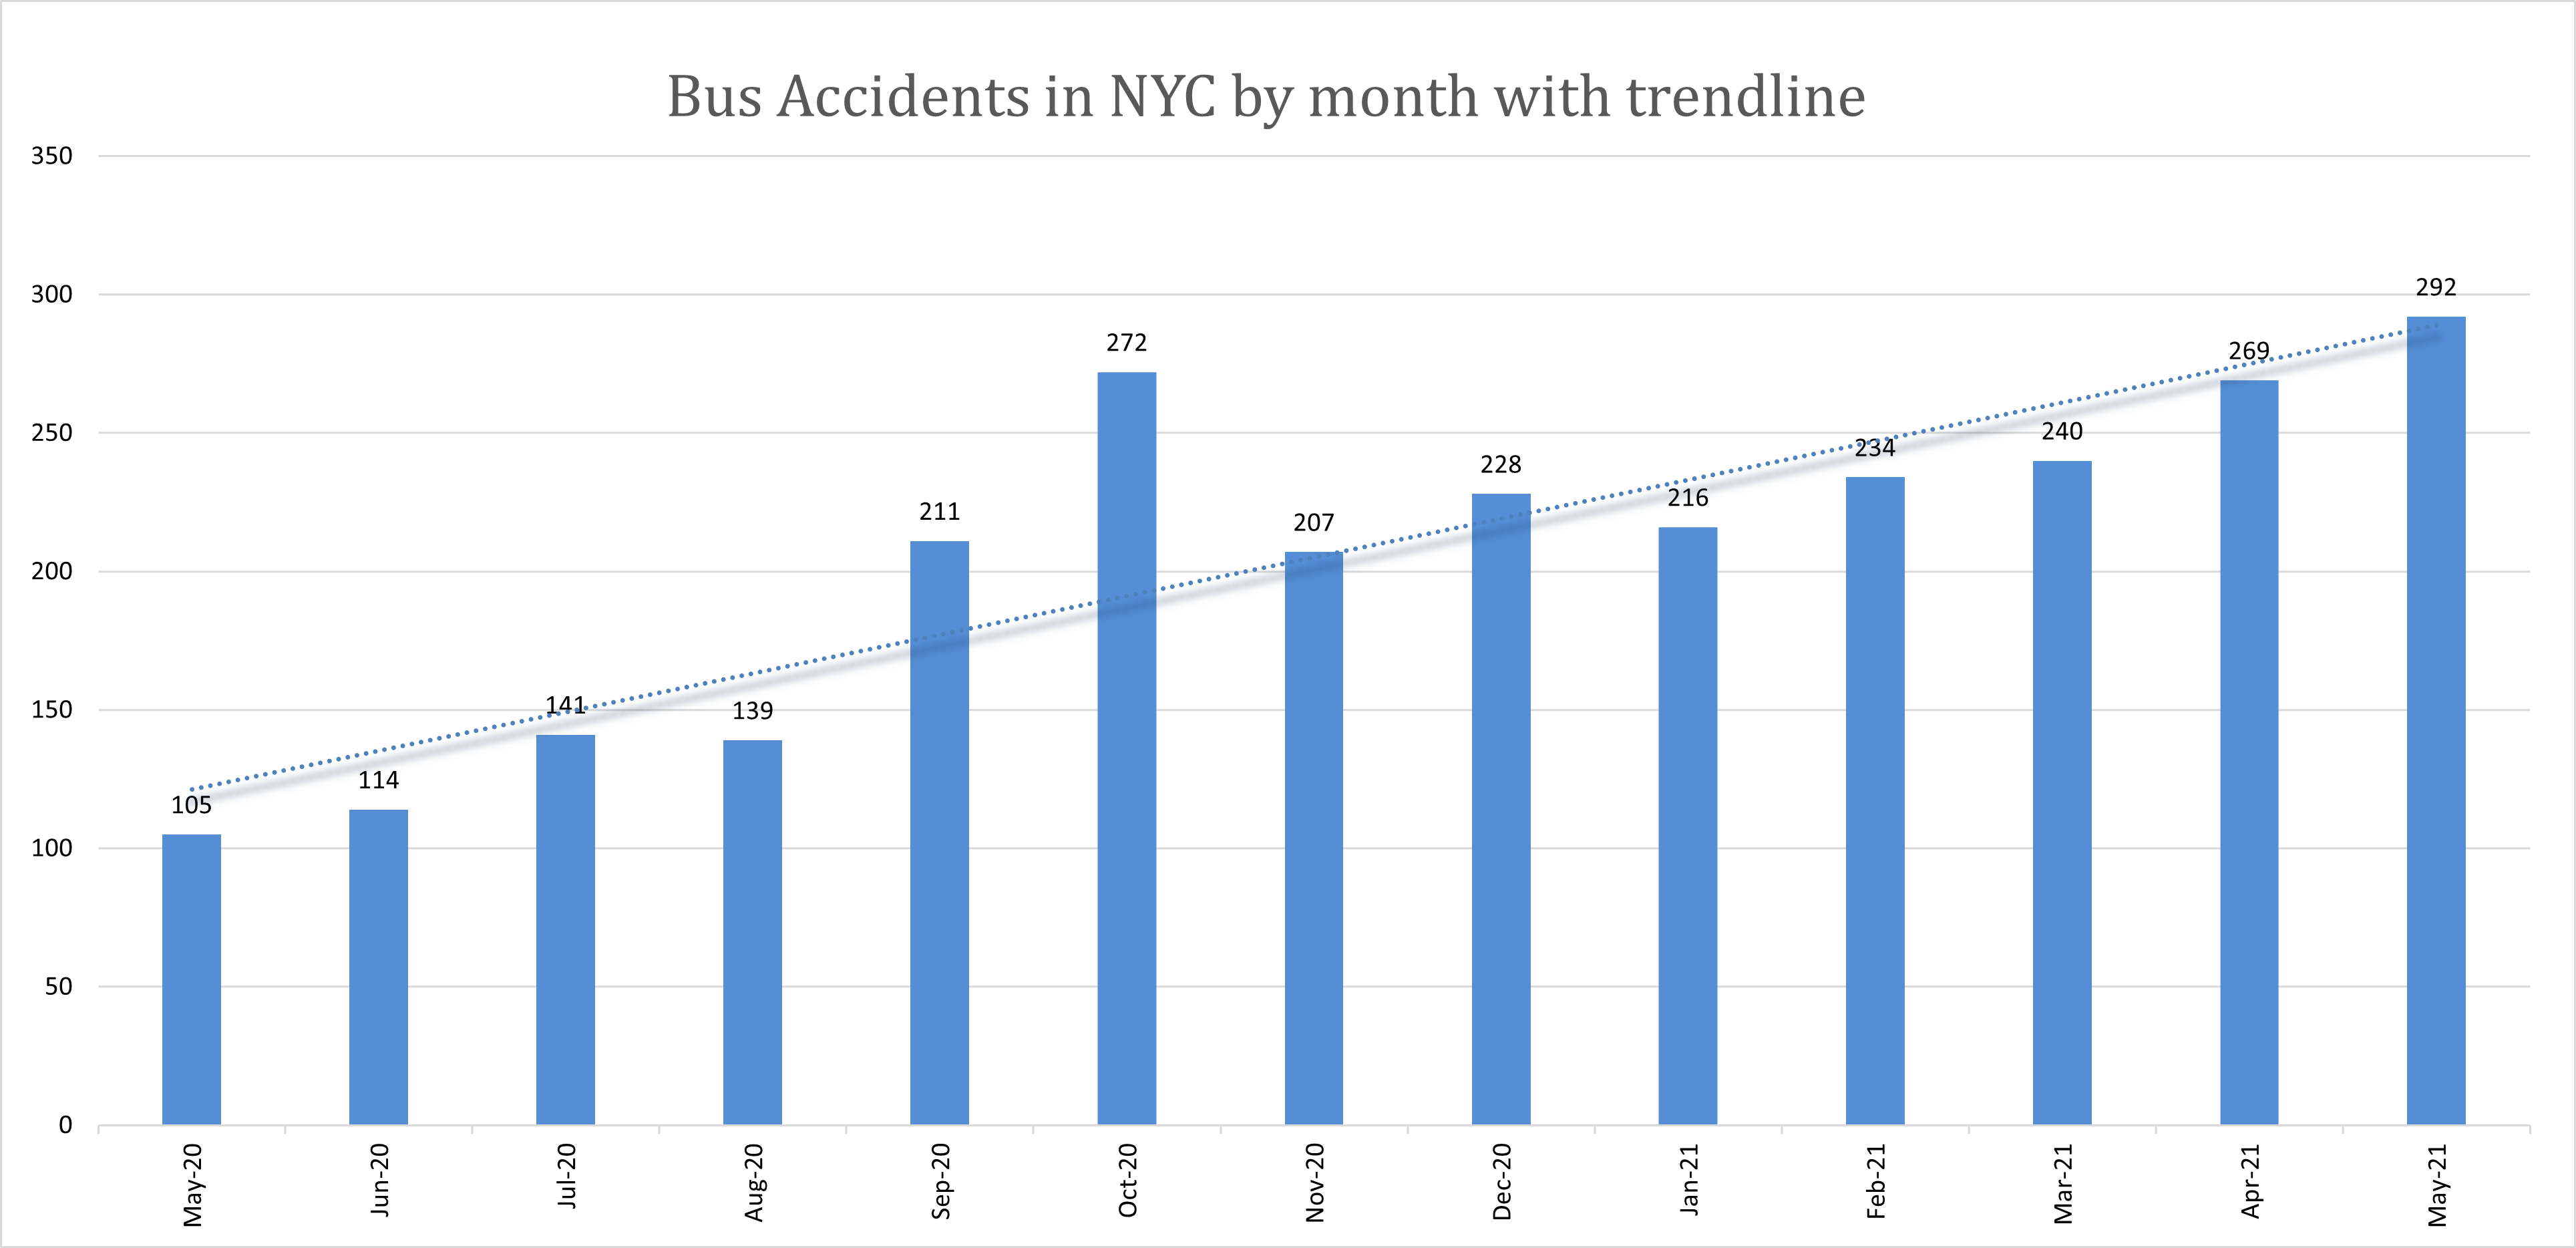 New York Bus Accidents May 2021